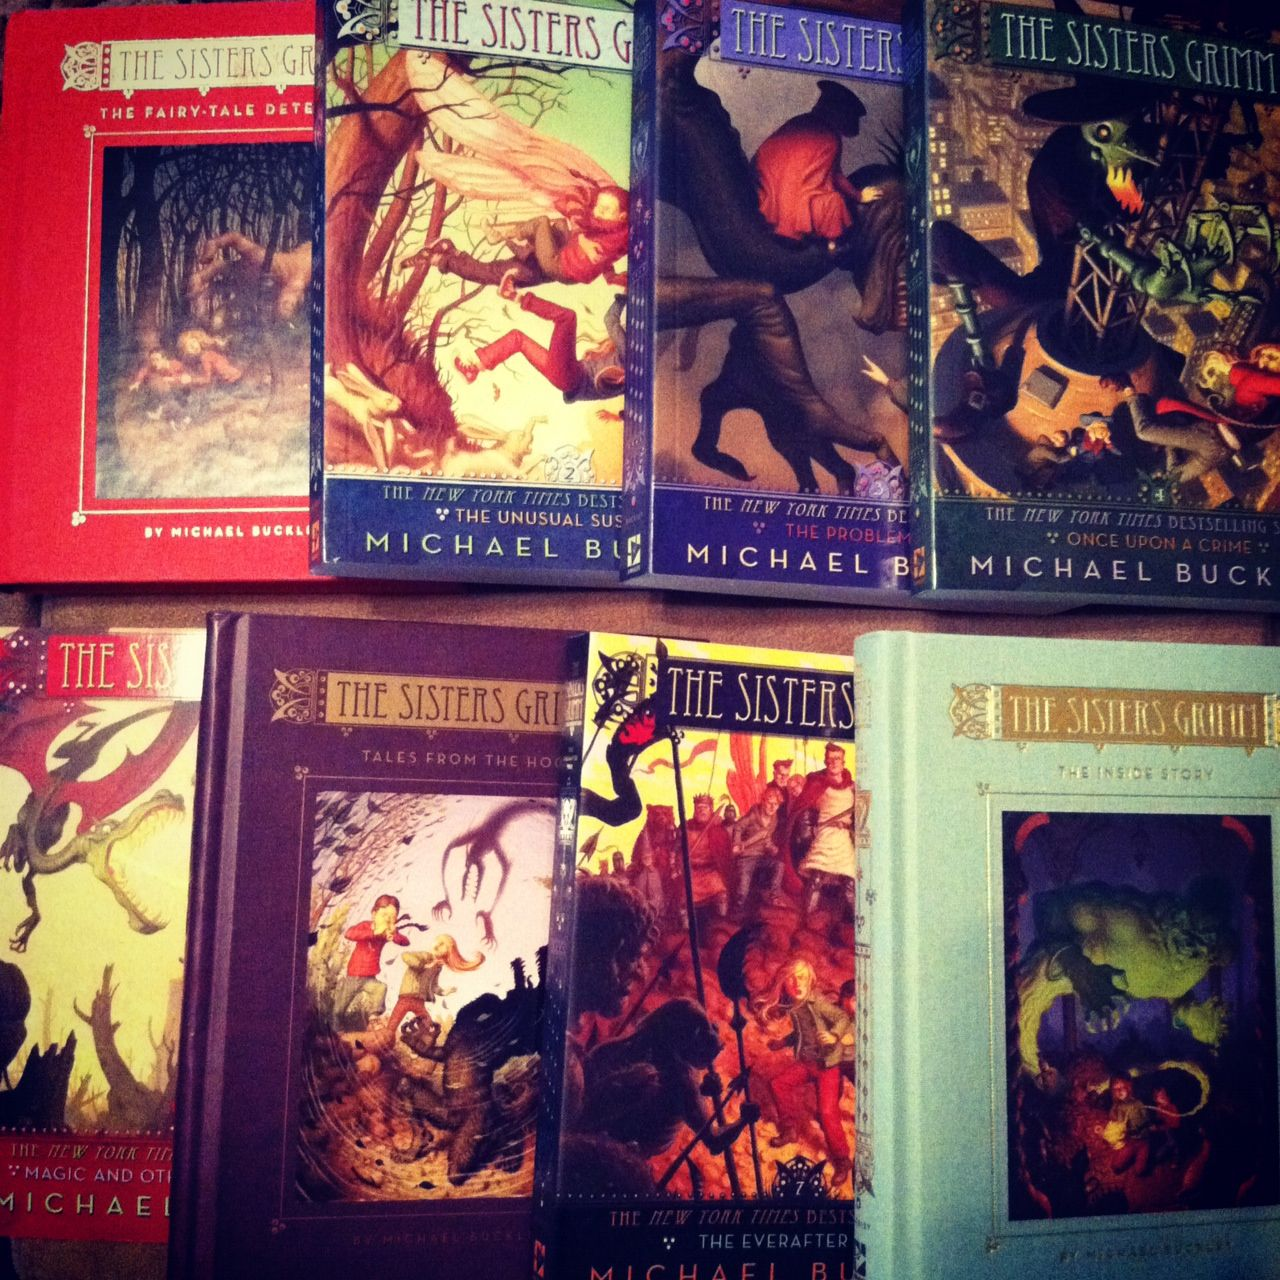 The Sister Grimm series!  Its an amazing series!!!!!! I was so obsessed with the series! Its amazing and creative! The books are very well written and are among my ultimate fav series.  Ages: 6 grade and up ( i read this series in 5/6 grade)